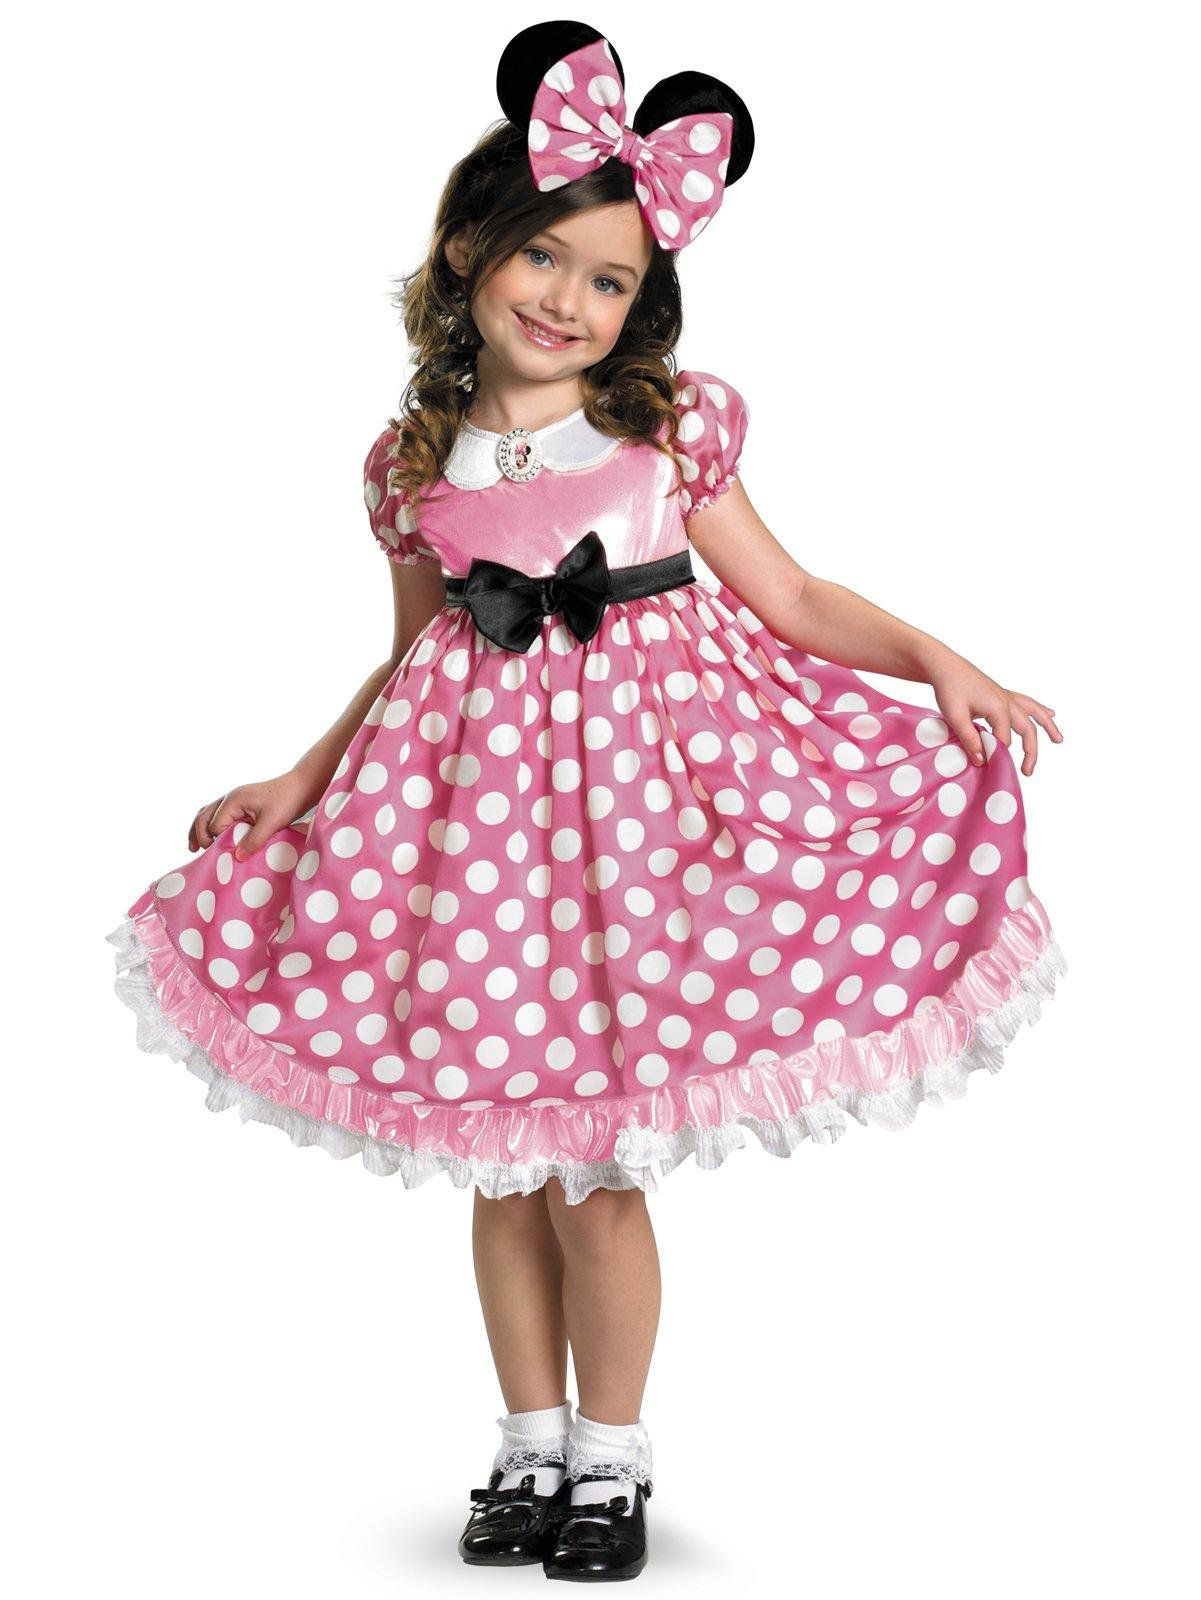 Disney Mickey Mouse Clubhouse Pink Minnie Mouse Glow in the Dark Costume For Children  sc 1 st  Wholesale Halloween Costumes & Disney Mickey Mouse Clubhouse Pink Minnie Mouse Glow in the Dark ...